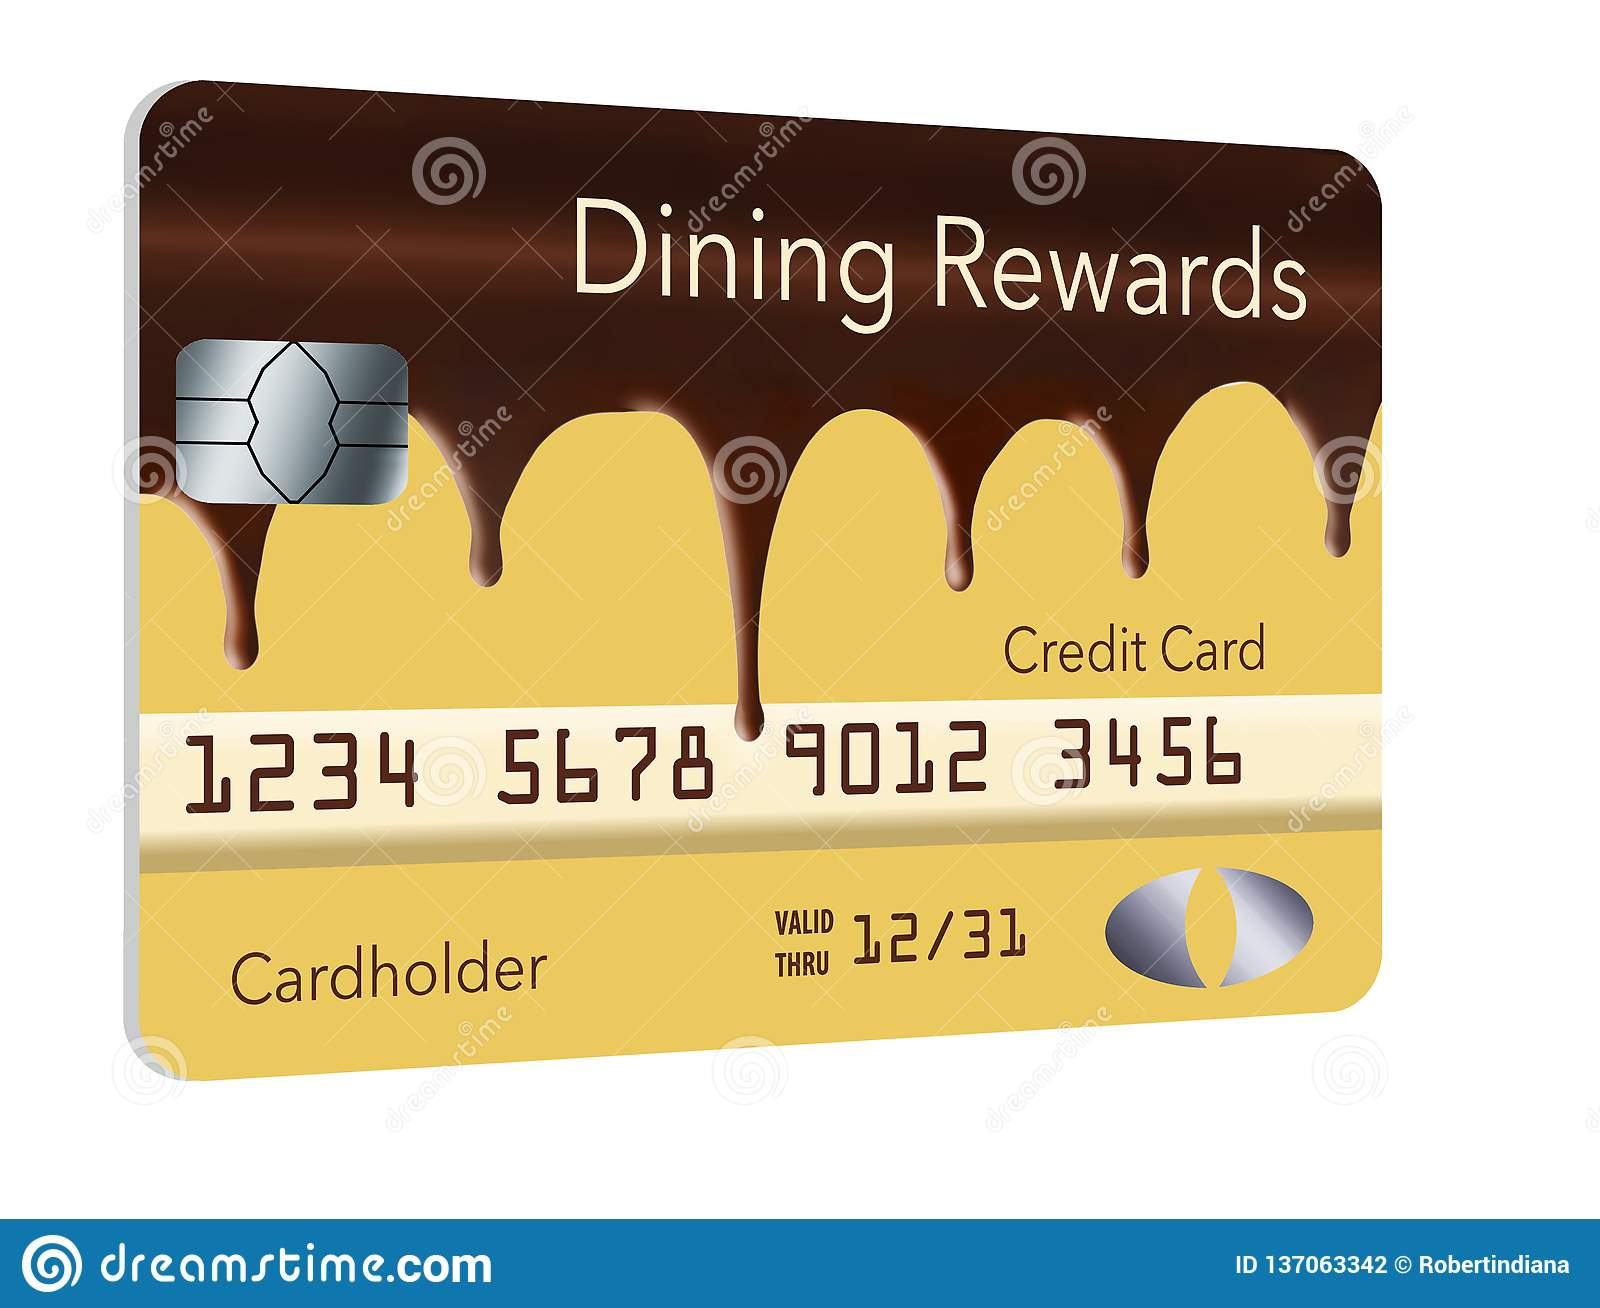 A Credit Card That Offers Cash Back Rewards For Dining Out